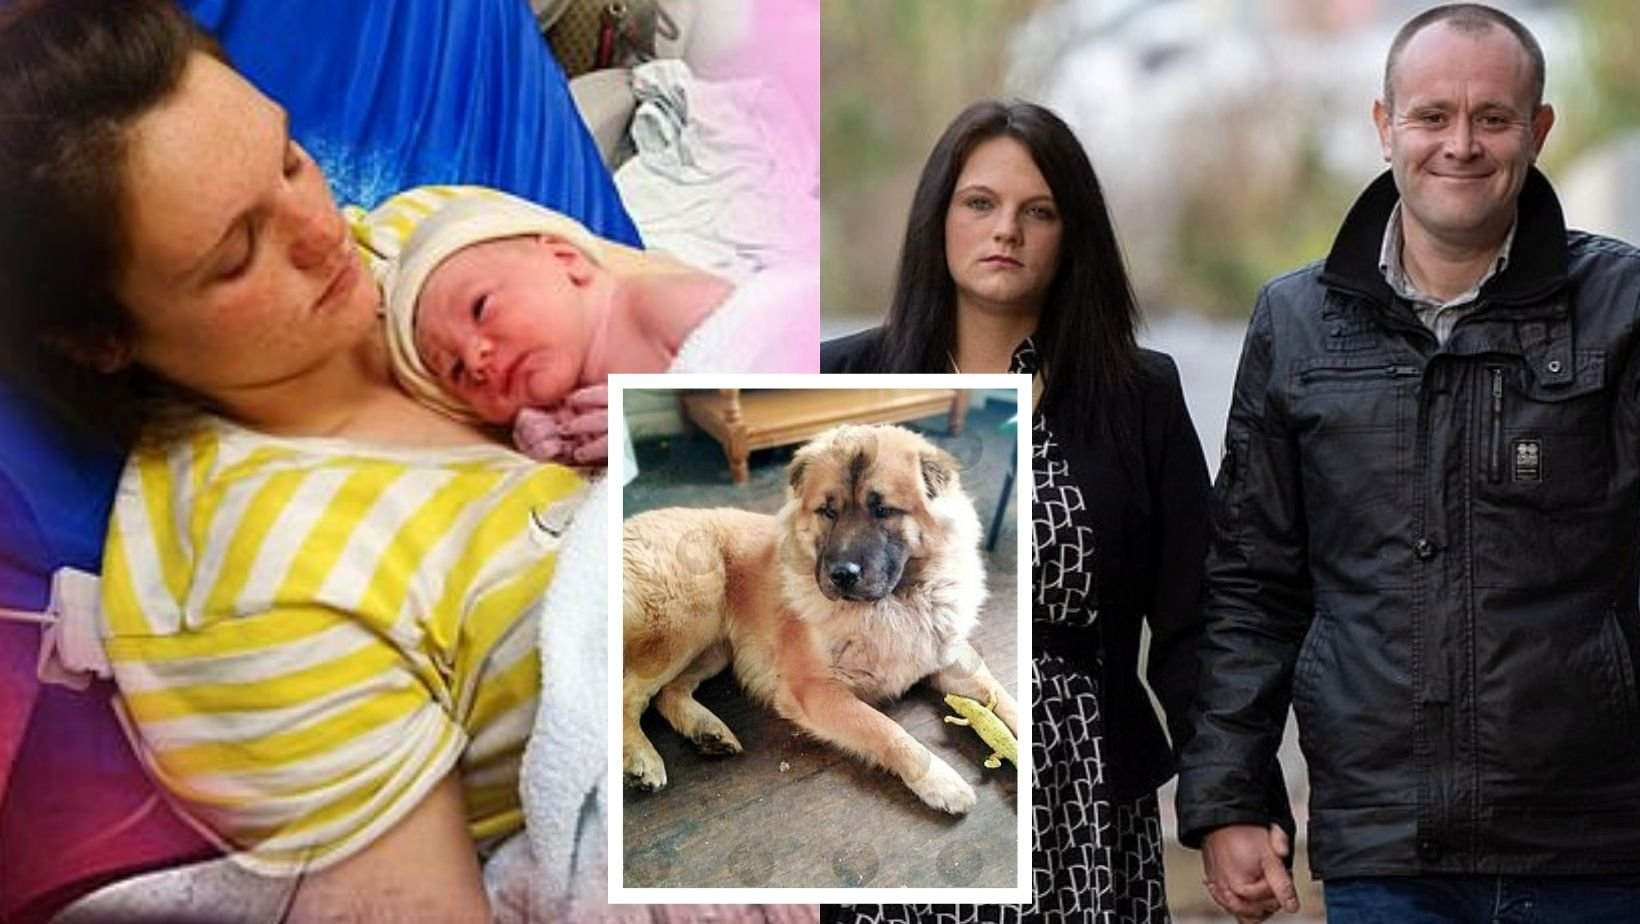 1 44.jpg?resize=412,275 - Parents Arrested After Jealous Family Dog Mauled Their 12-Day-Old Newborn Son To Death